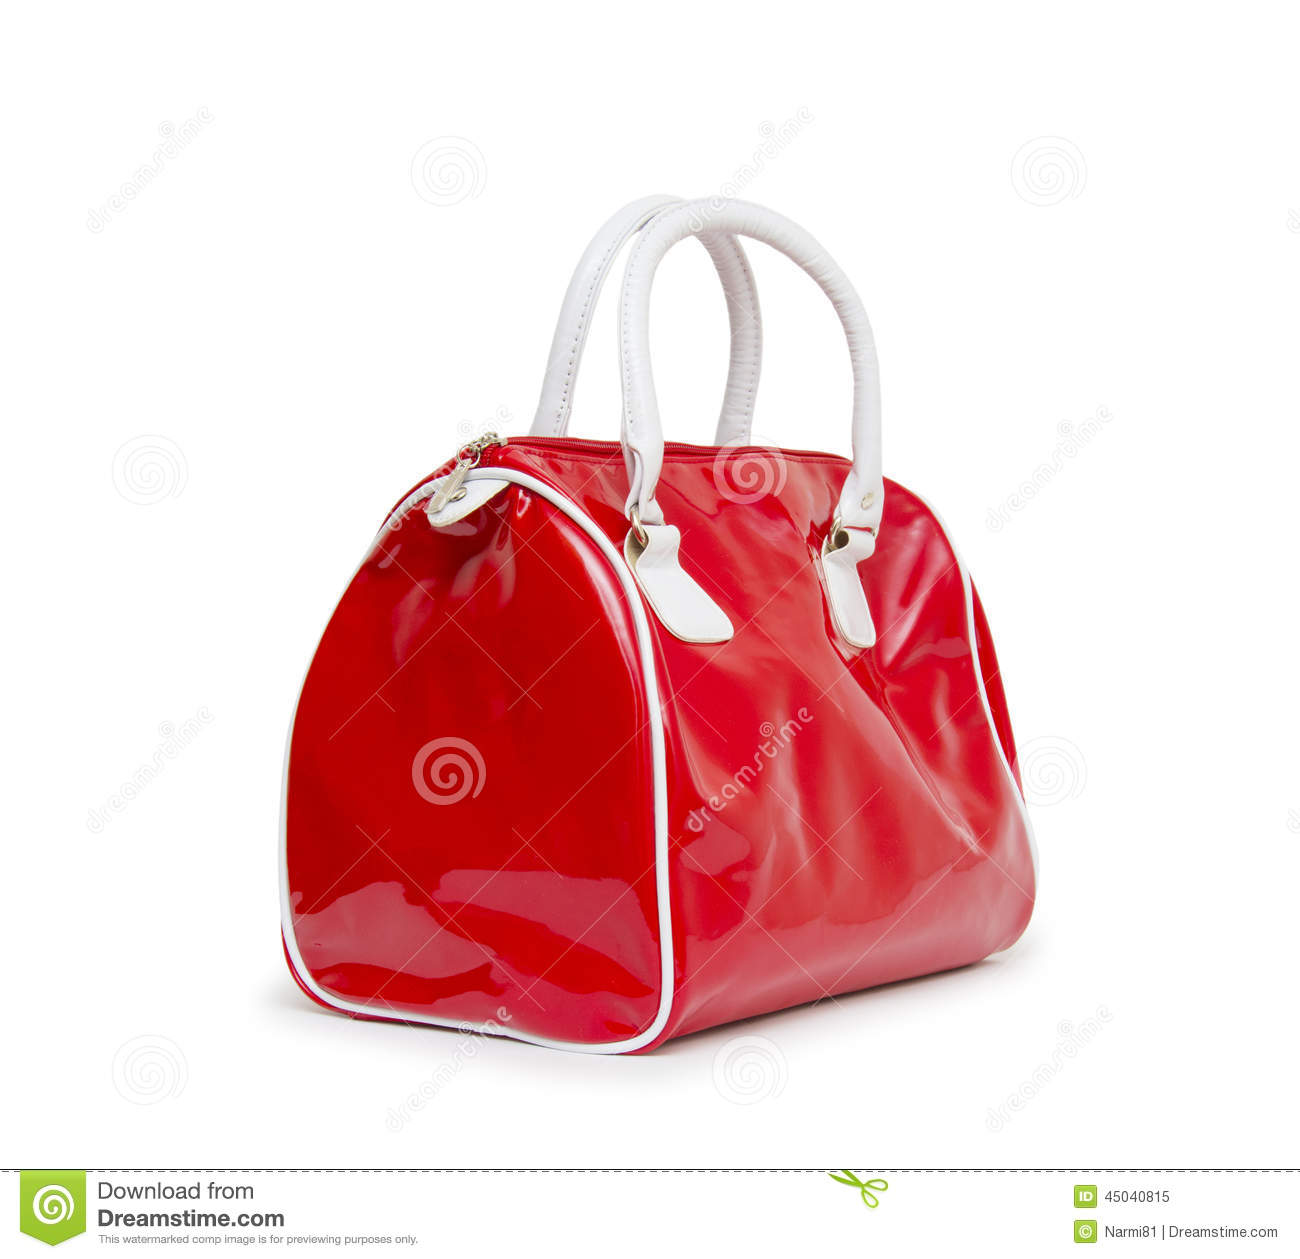 cb387552ece96 Red Women Bag Isolated On White Background Stock Image - Image of ...